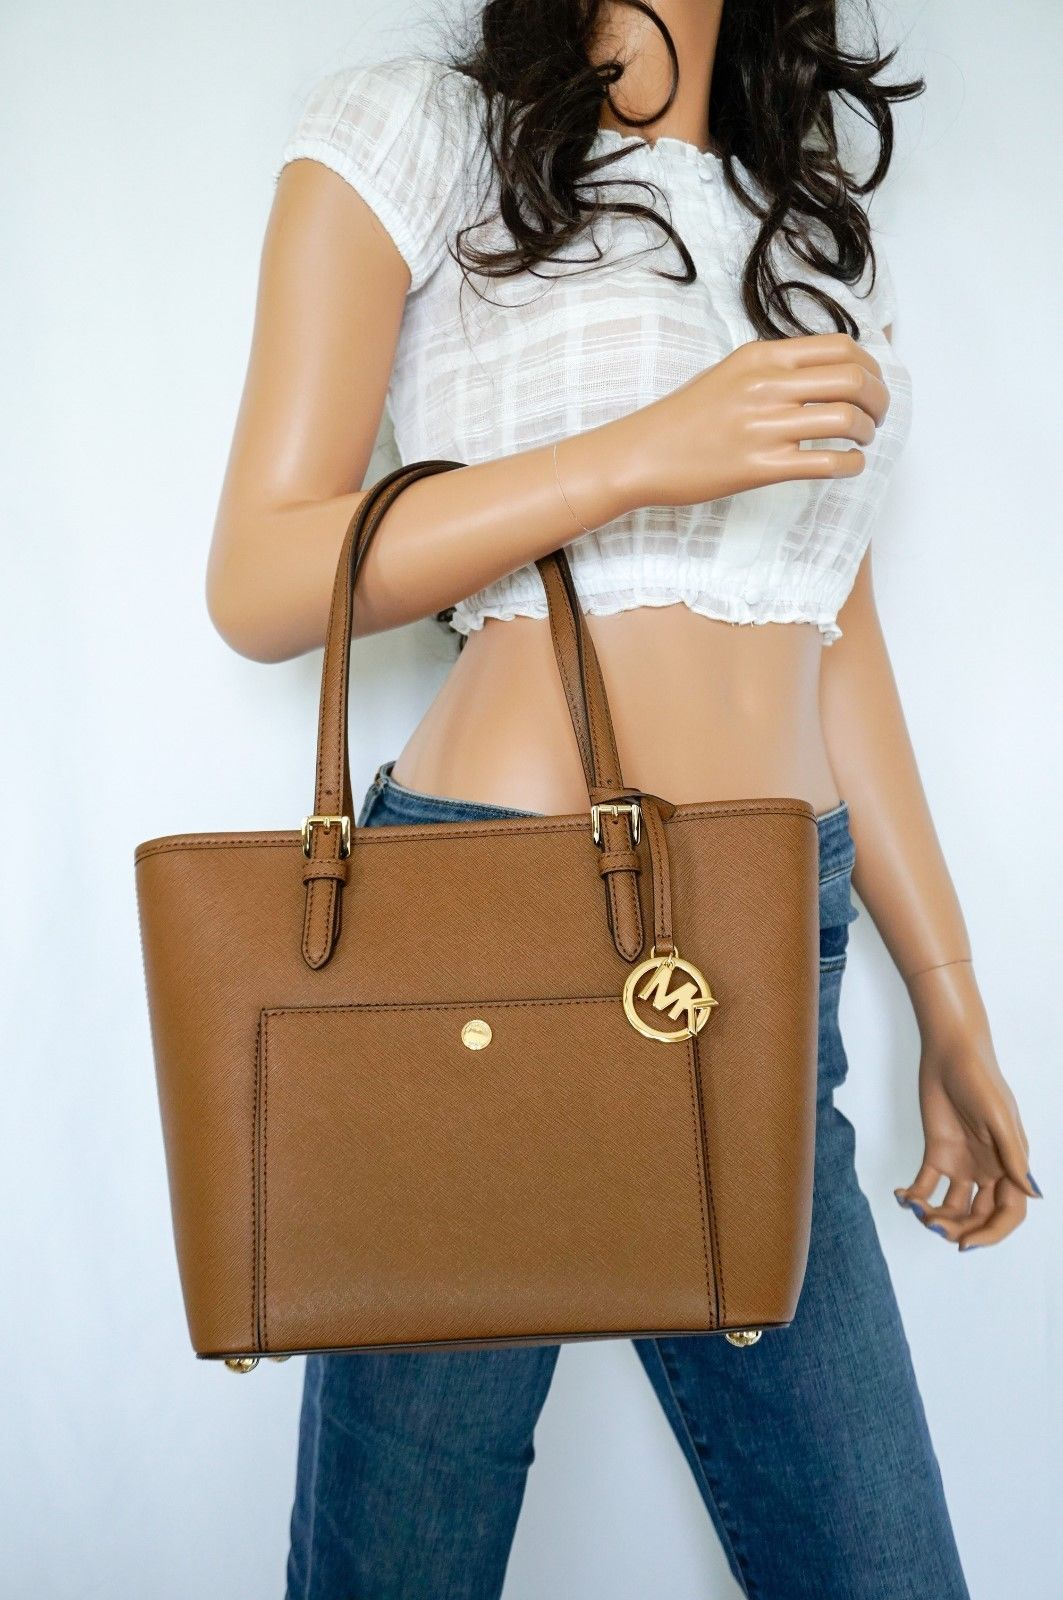 b96efc61a1be S l1600. S l1600. Previous. MICHAEL KORS JET SET ITEM MEDIUM TOP ZIP SNAP  POCKET TOTE SAFFIANO LEATHER BROWN